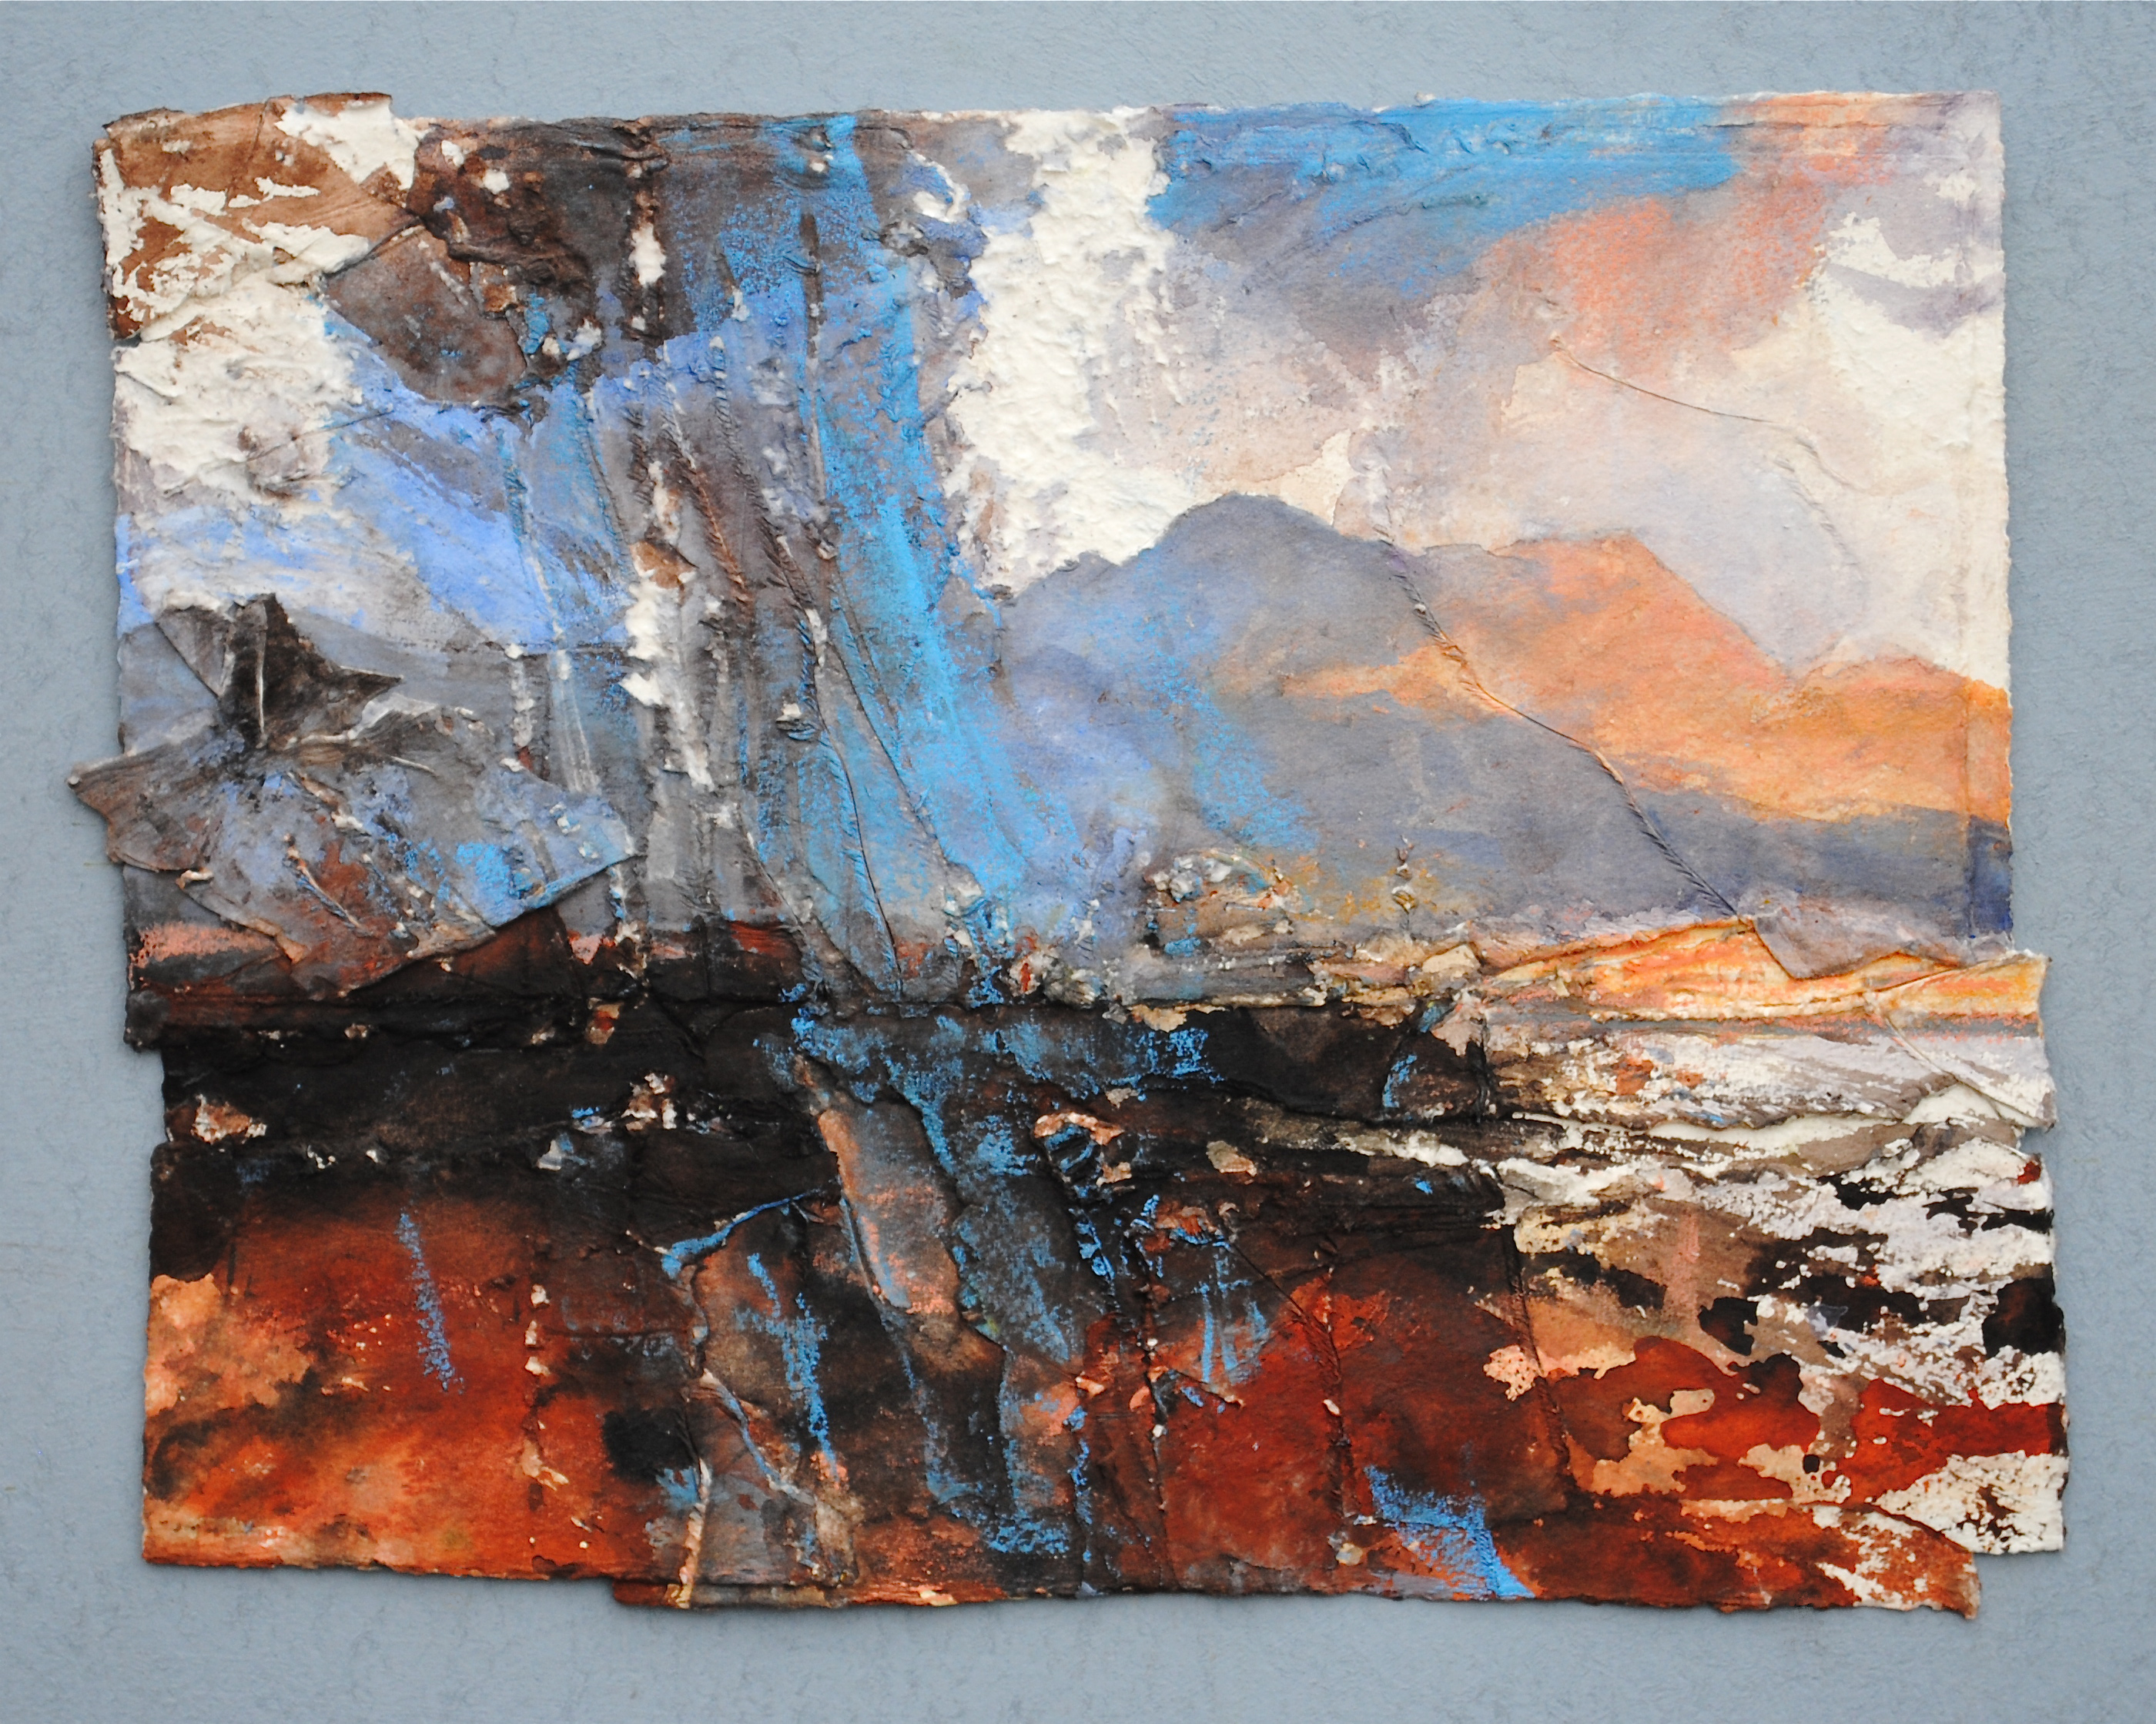 David-Tress-The-Cuillins-From-Raasay.-I-mixed-media-on-paper-32x41cm-2015